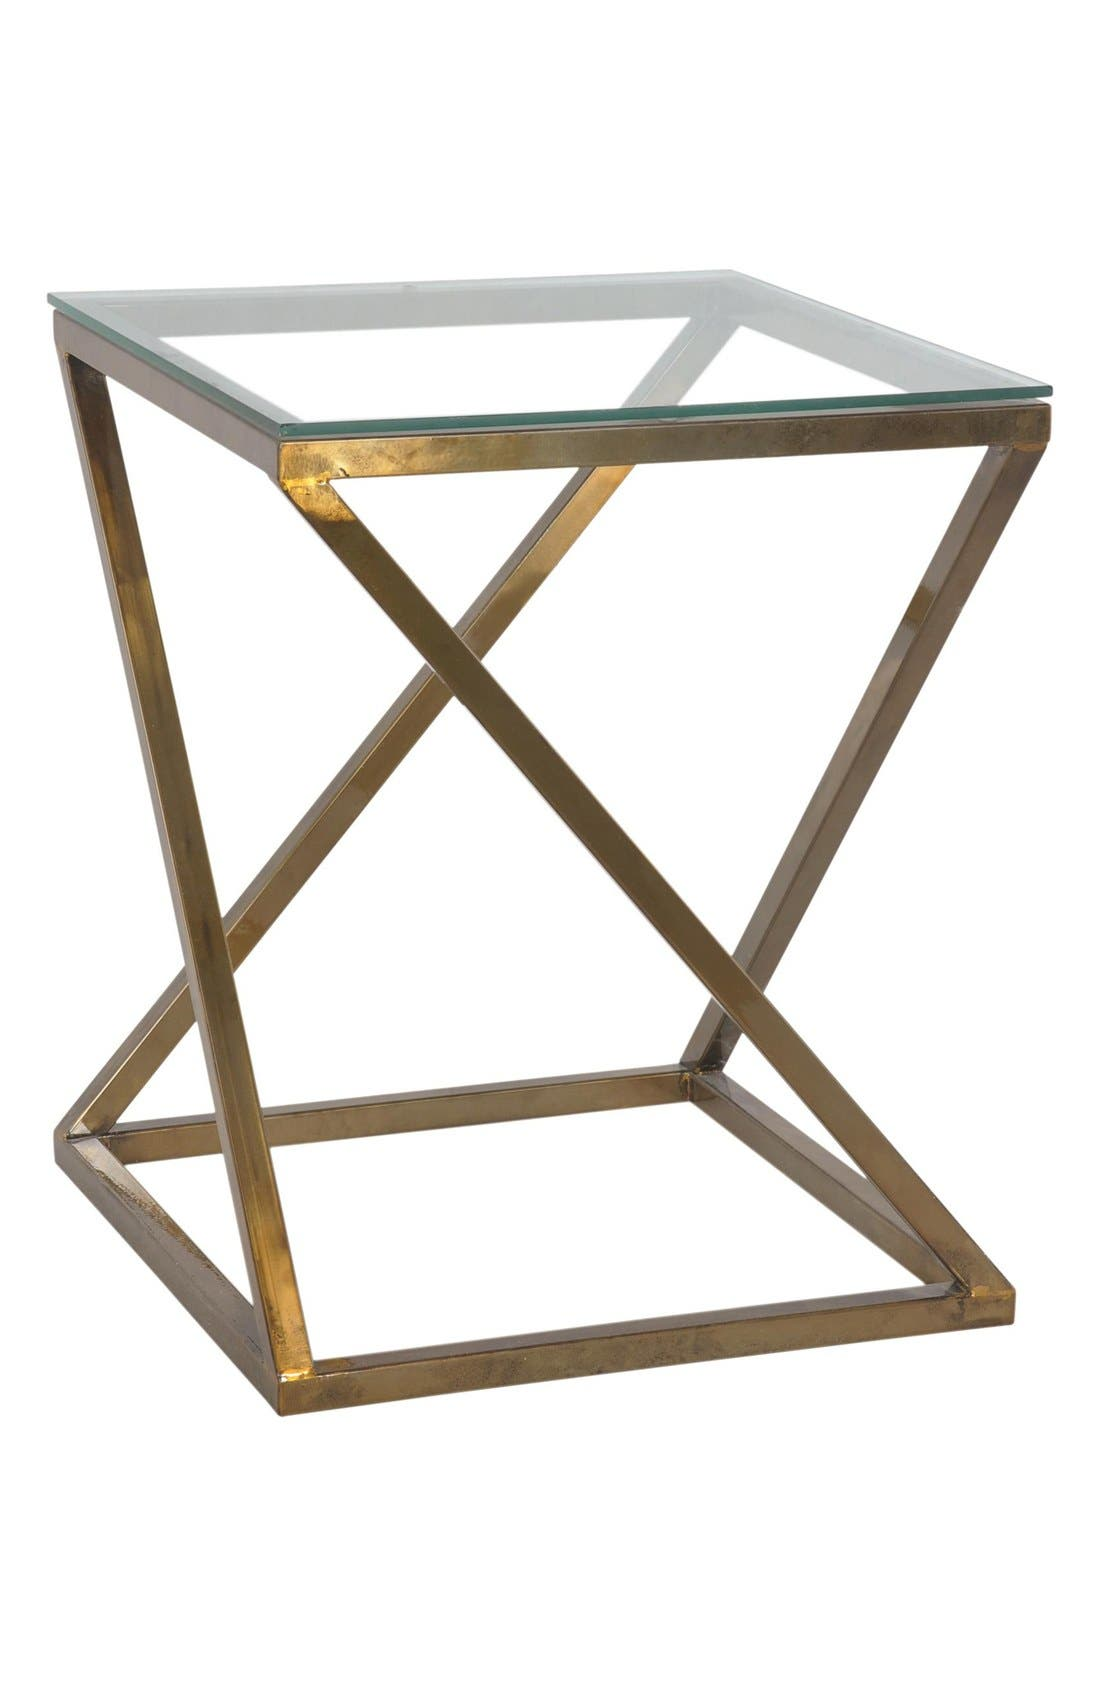 Alternate Image 1 Selected - Renwil 'Penrose' Glass Top Accent Table